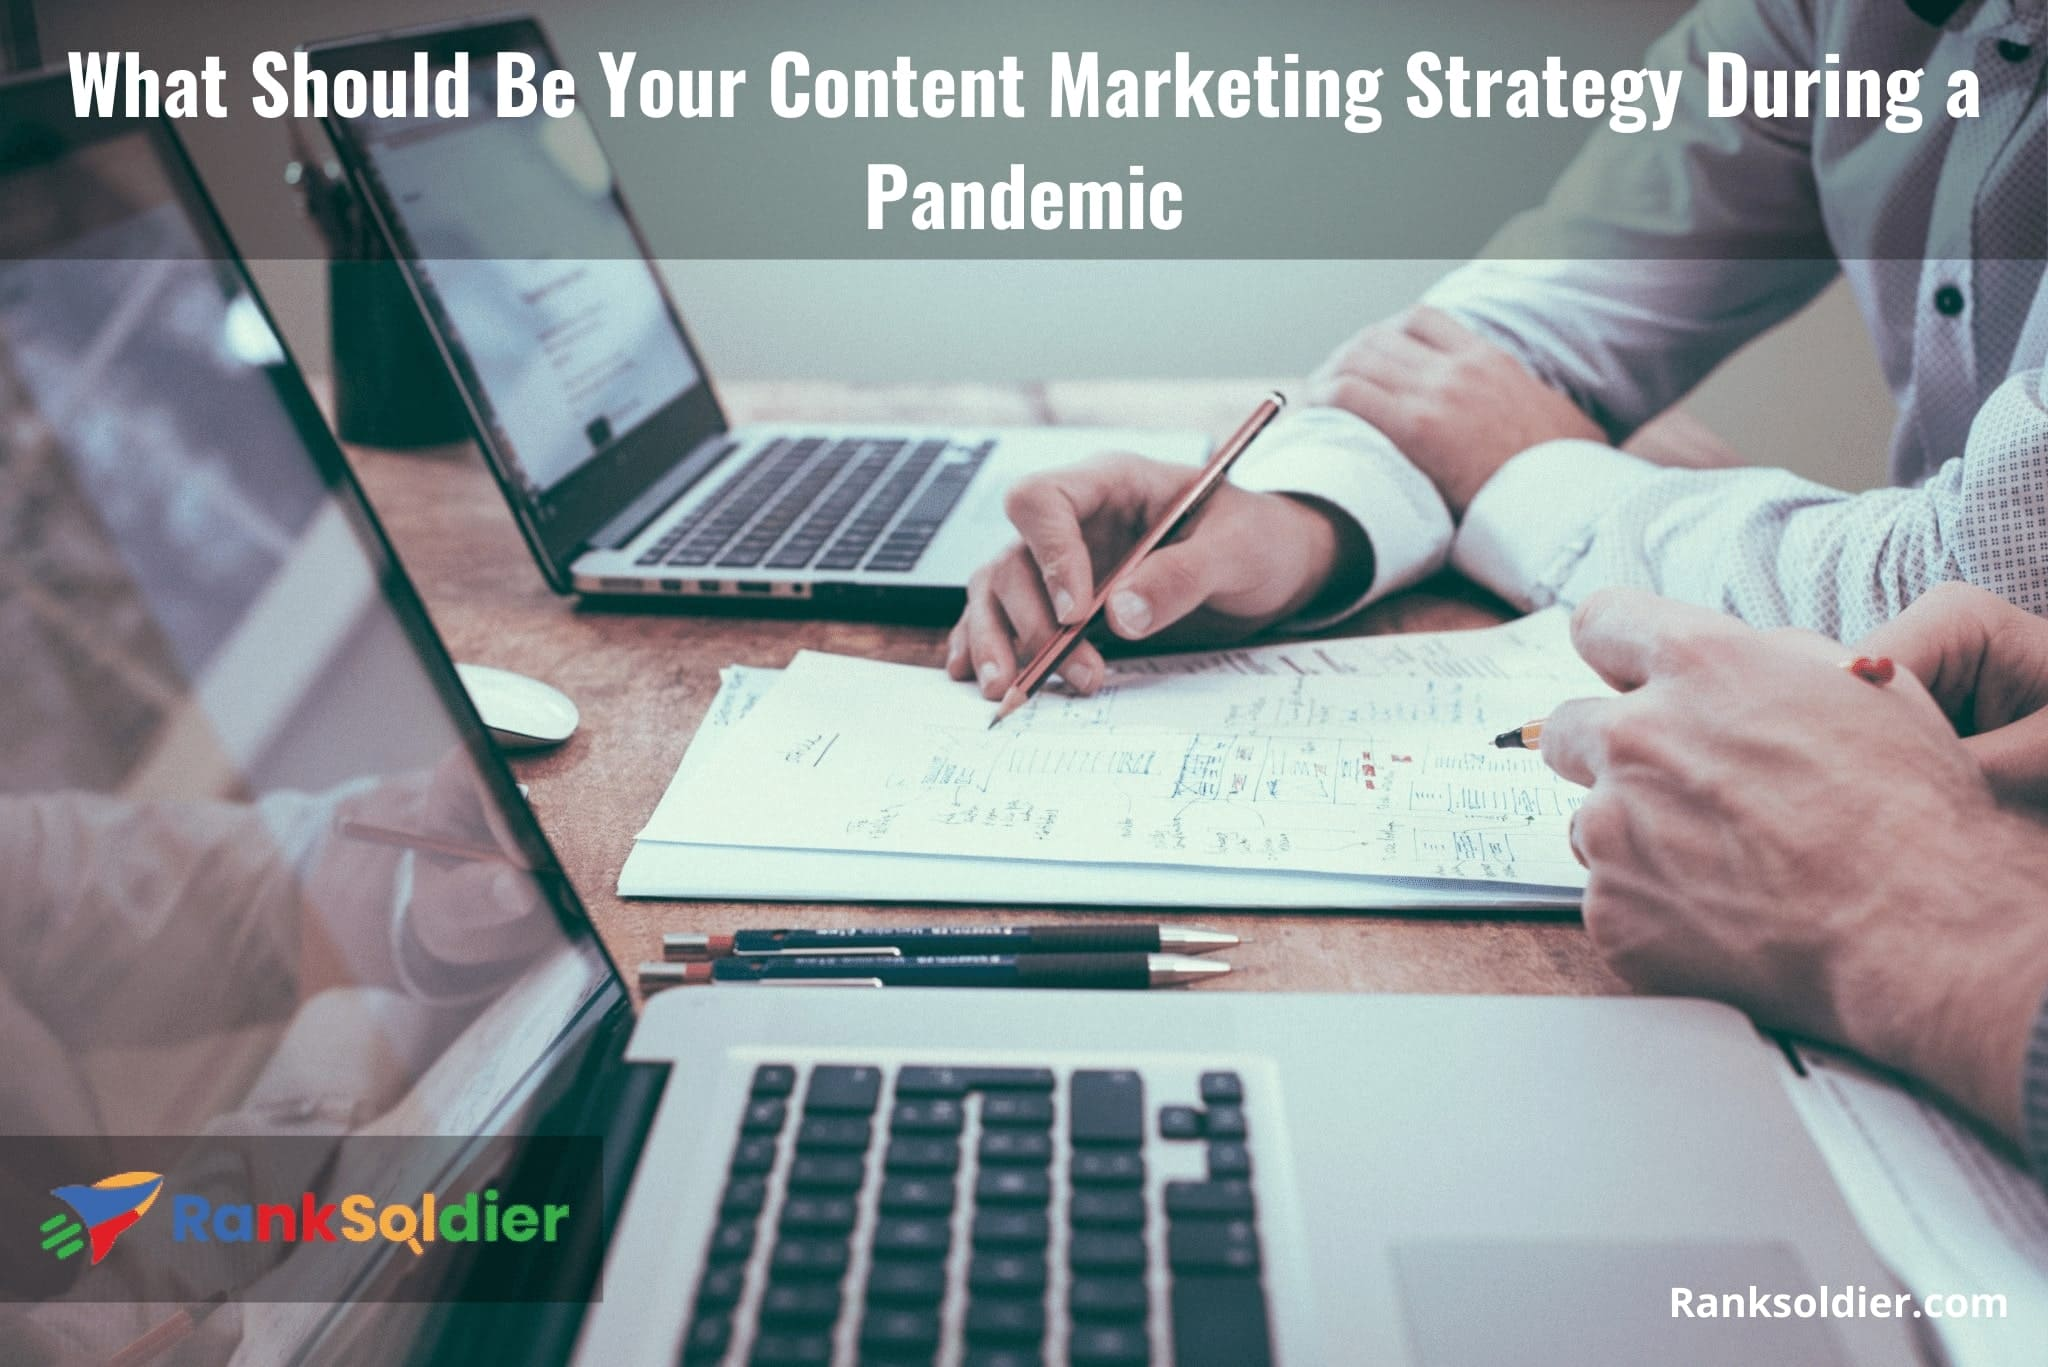 What Should Be Your Content Marketing Strategy During a Pandemic